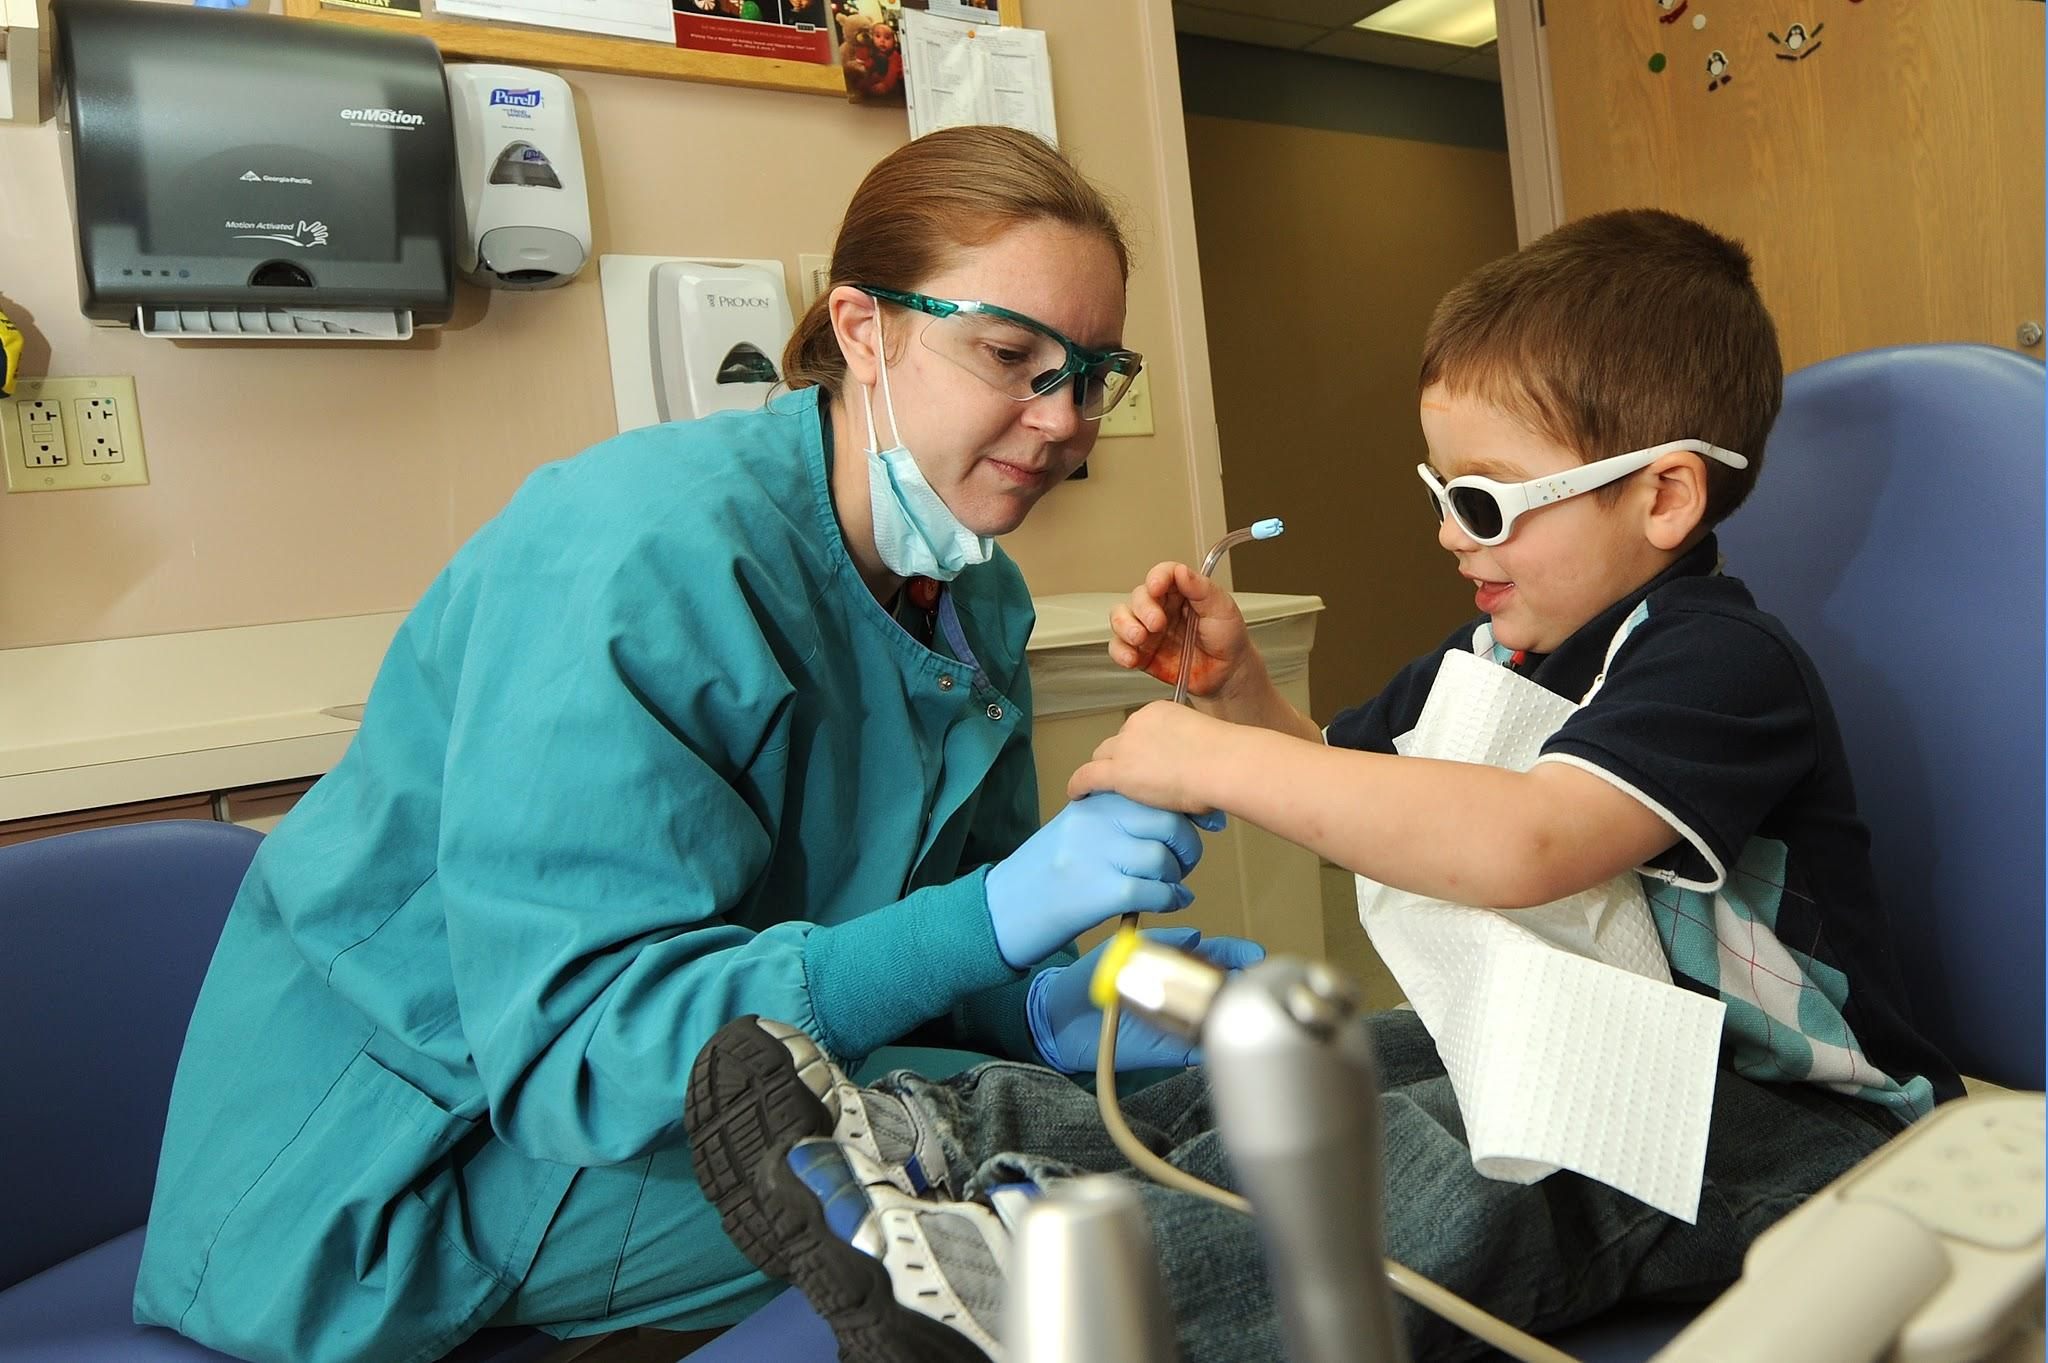 Why choose a pediatric dentist for your child?